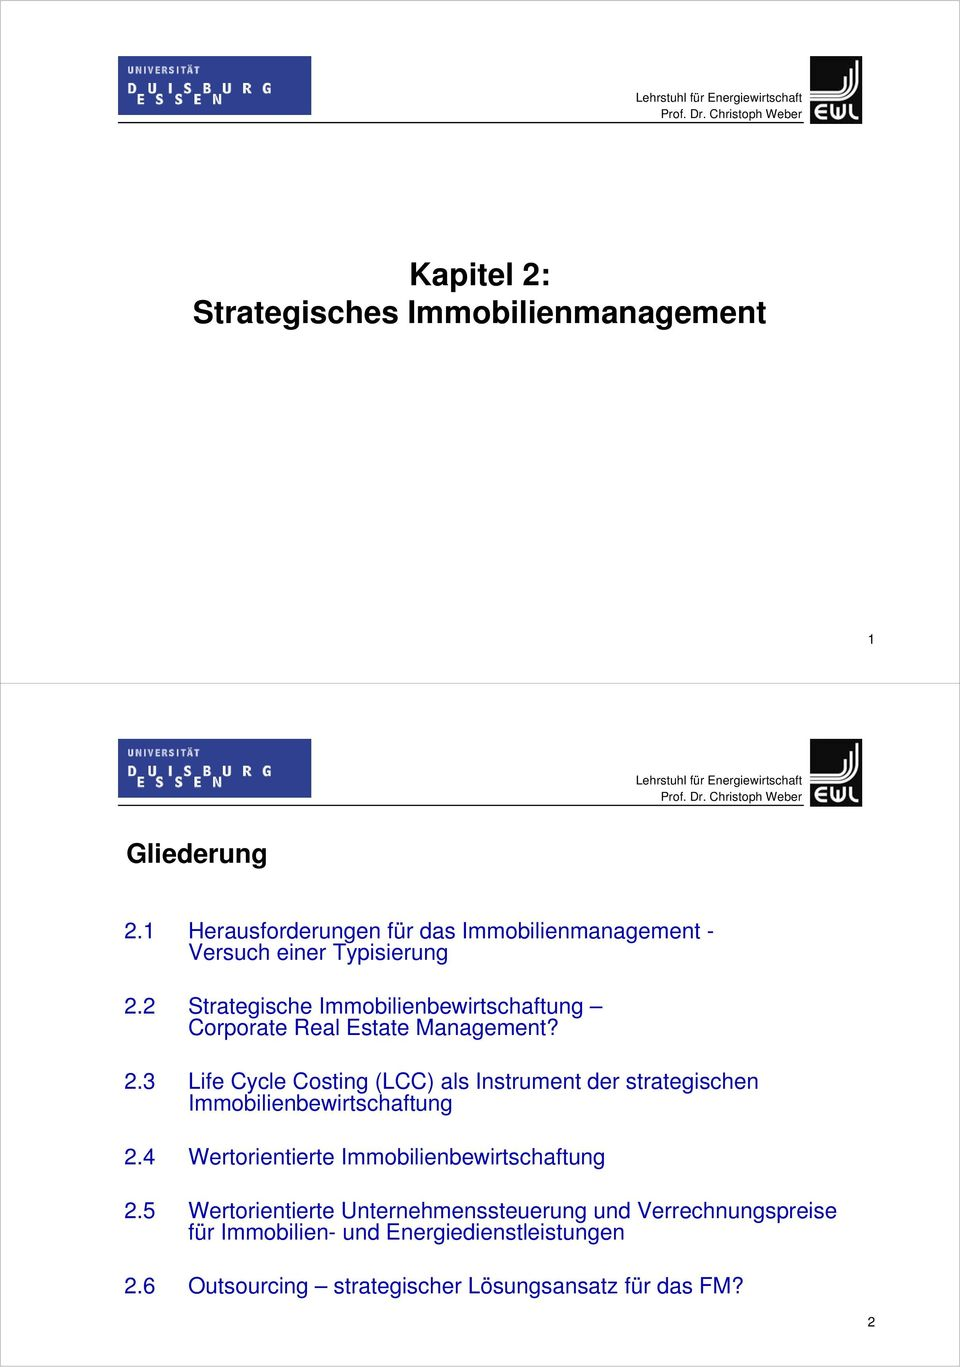 2 Strategische Immobilienbewirtschaftung Corporate Real Estate Management? 2.